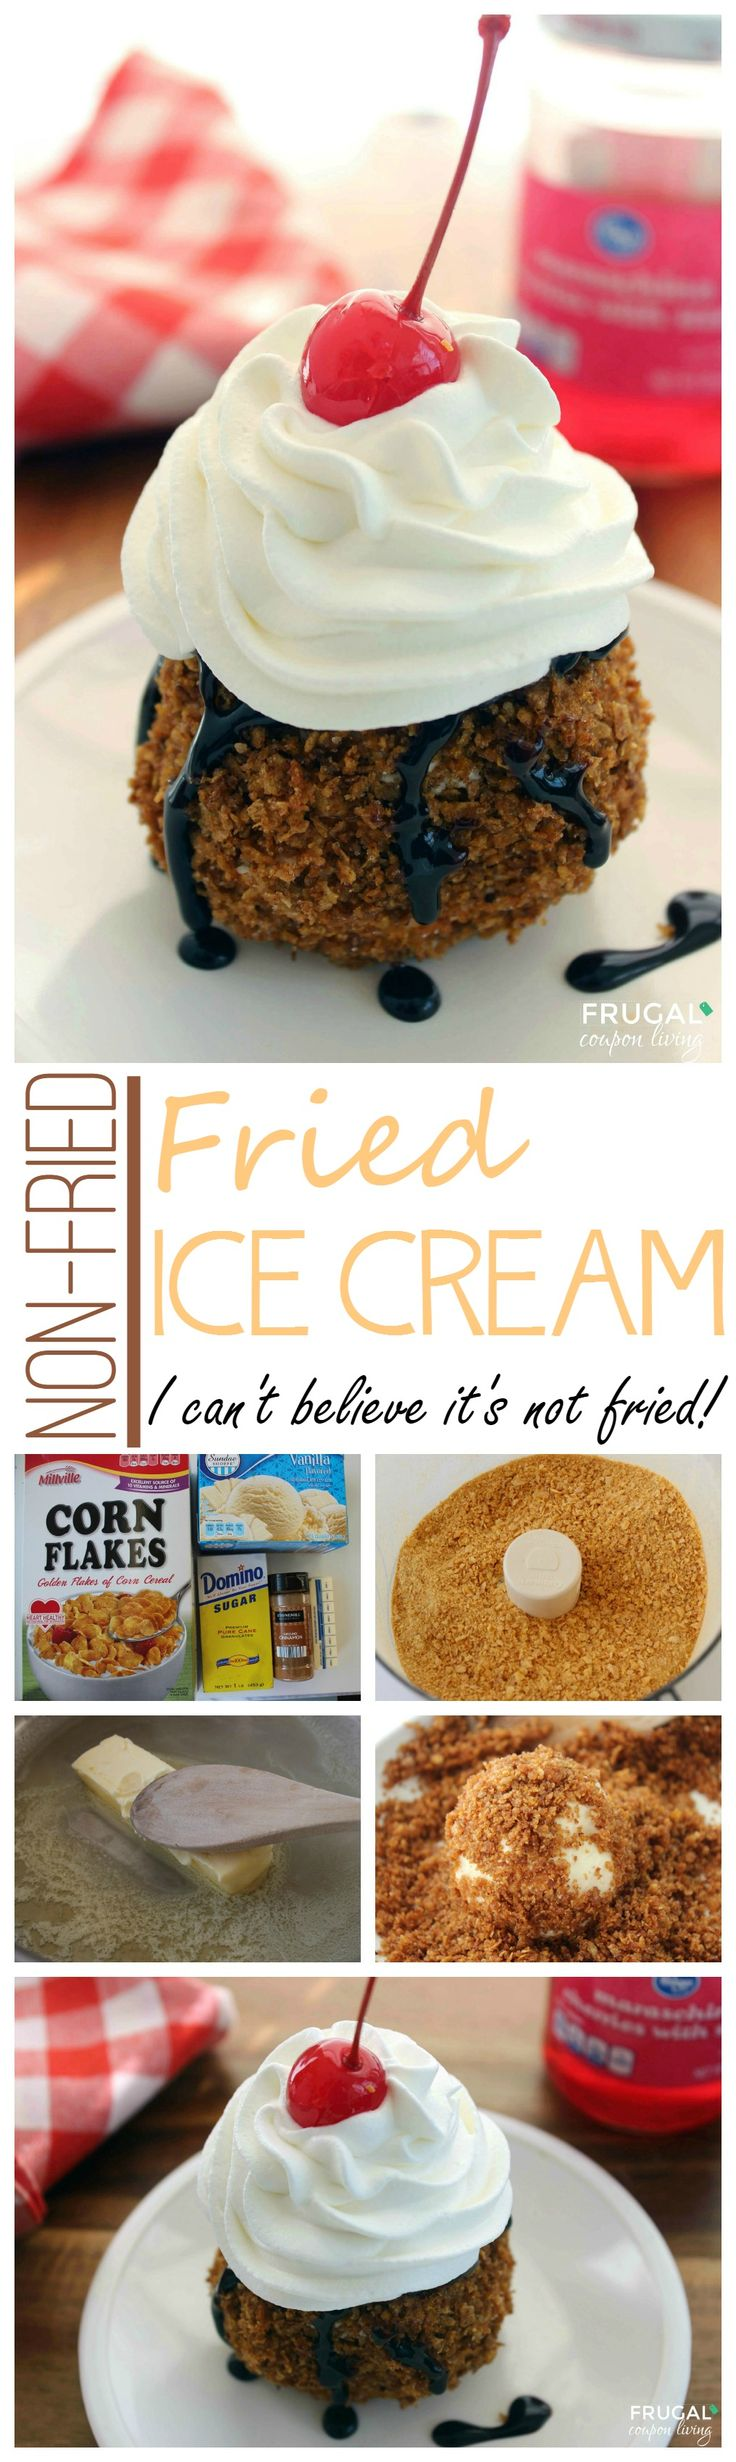 Non-Fried Fried Ice Cream Recipe - easy to make fried ice cream recipe that isn't fried. Even the kids can help with this ice cream recipe!